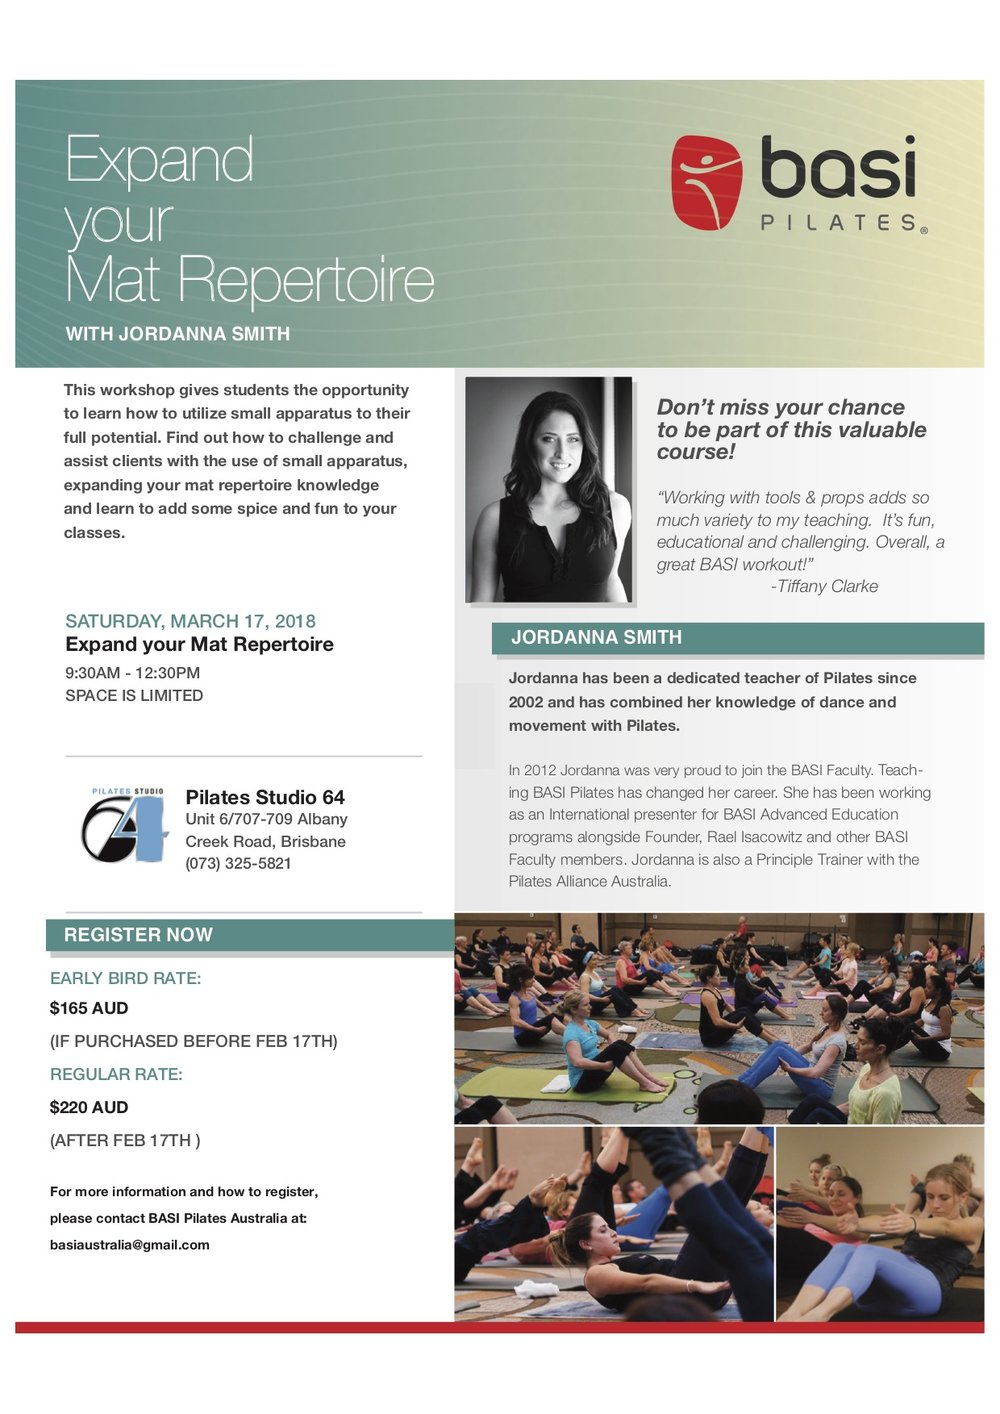 Expand your Mat Repetoire Brisbane.jpg